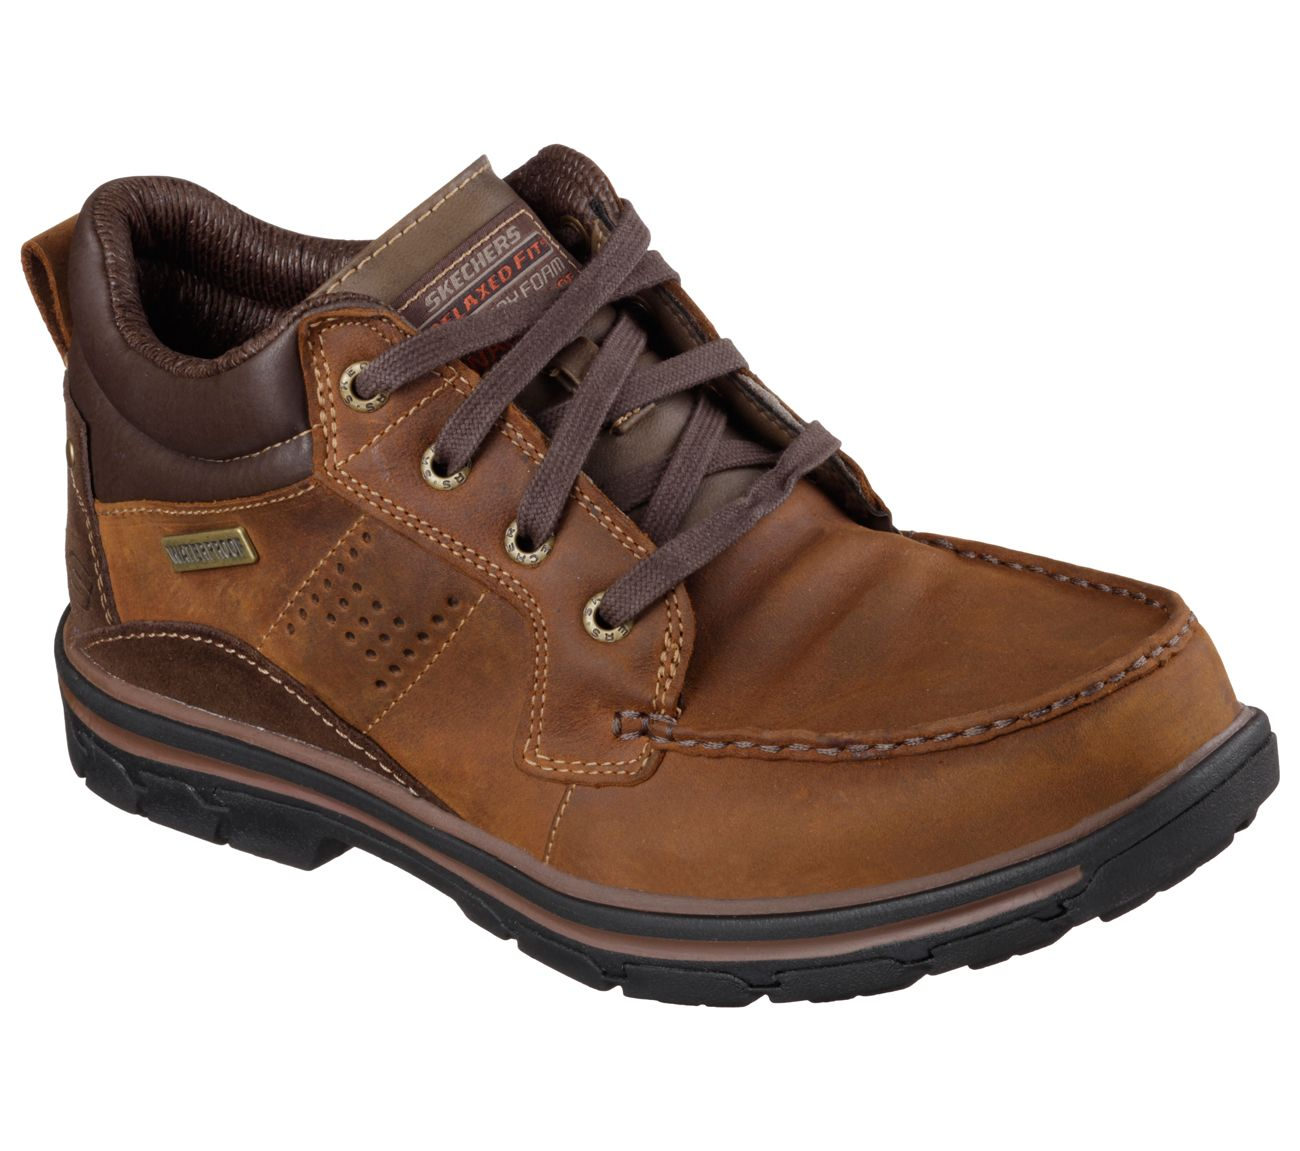 Relaxed fit segment melego skechers relaxed fit mens